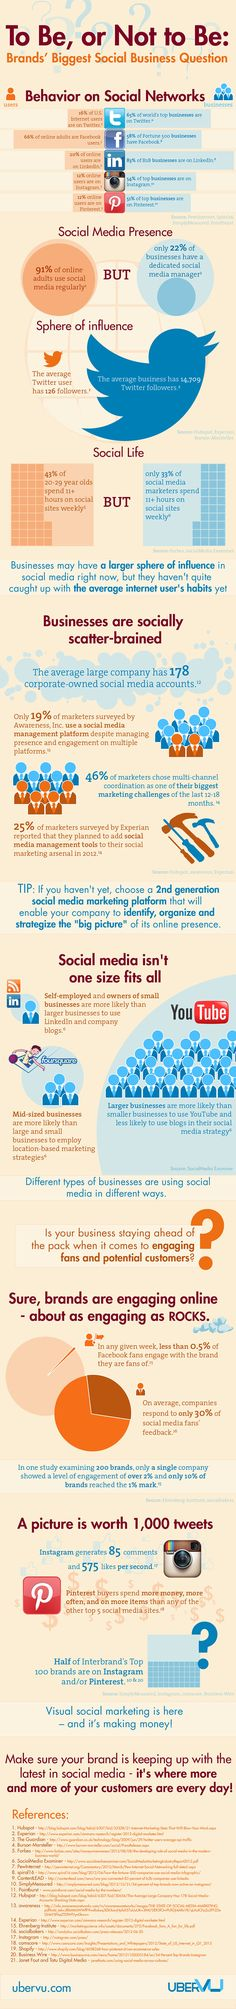 Infographic with social media infomation on business and social media